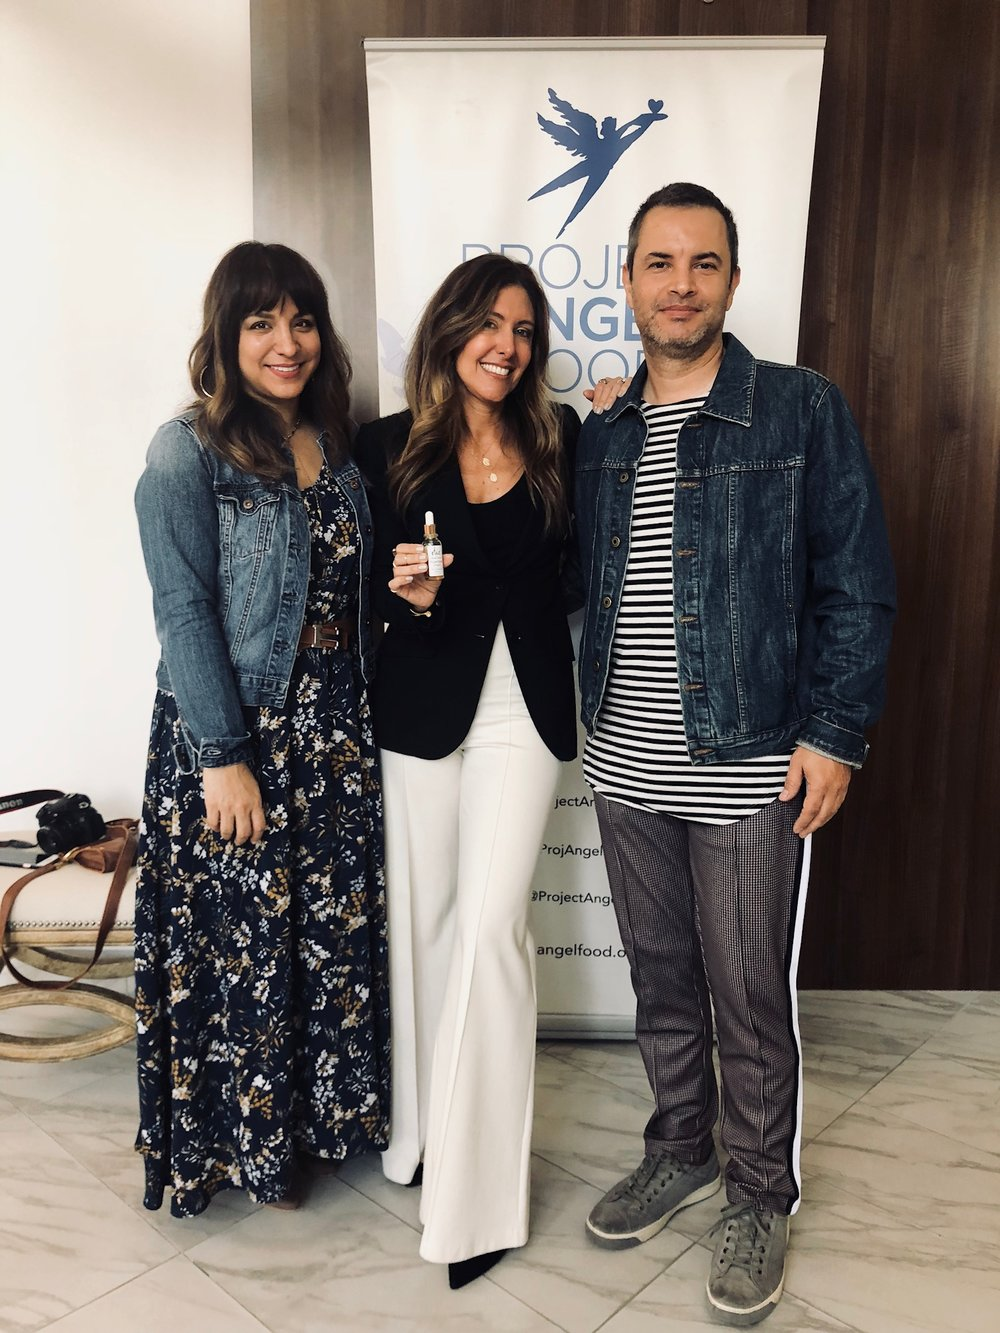 Influencers   Rossana Vanoni   and   Douglas Lagos